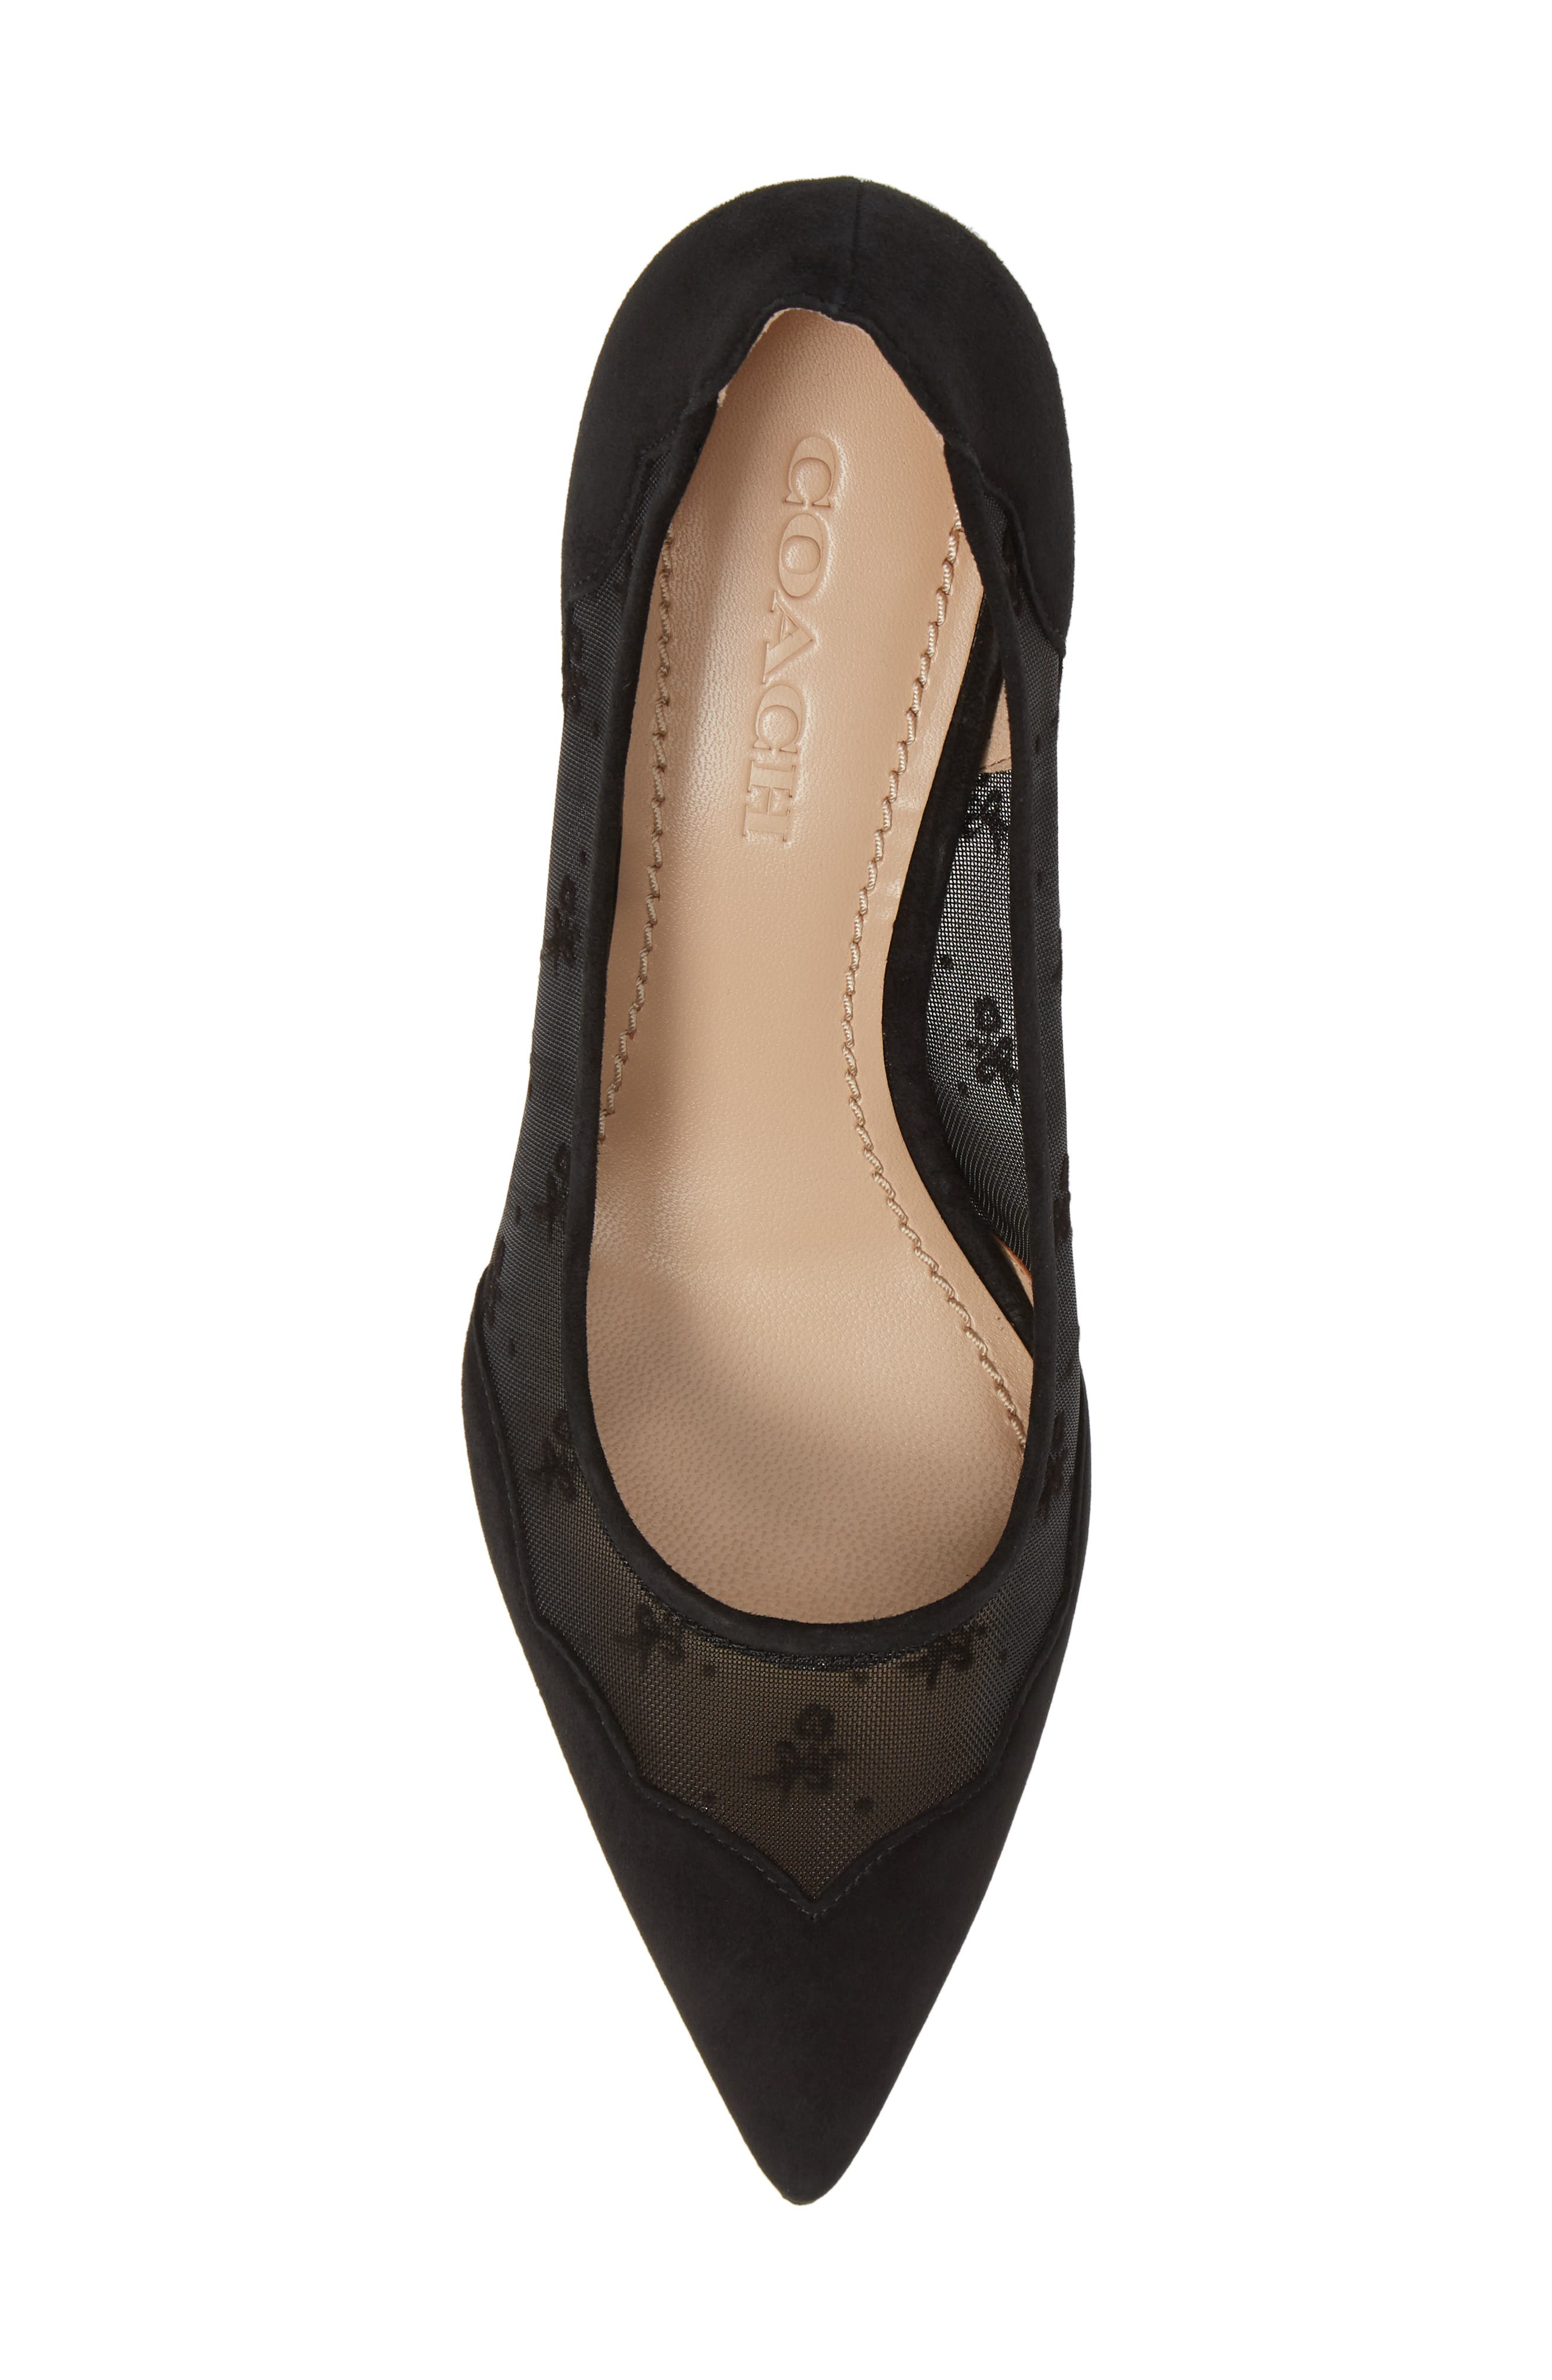 COACH, Whitley Scallop Pointy Toe Pump, Alternate thumbnail 5, color, BLACK SUEDE